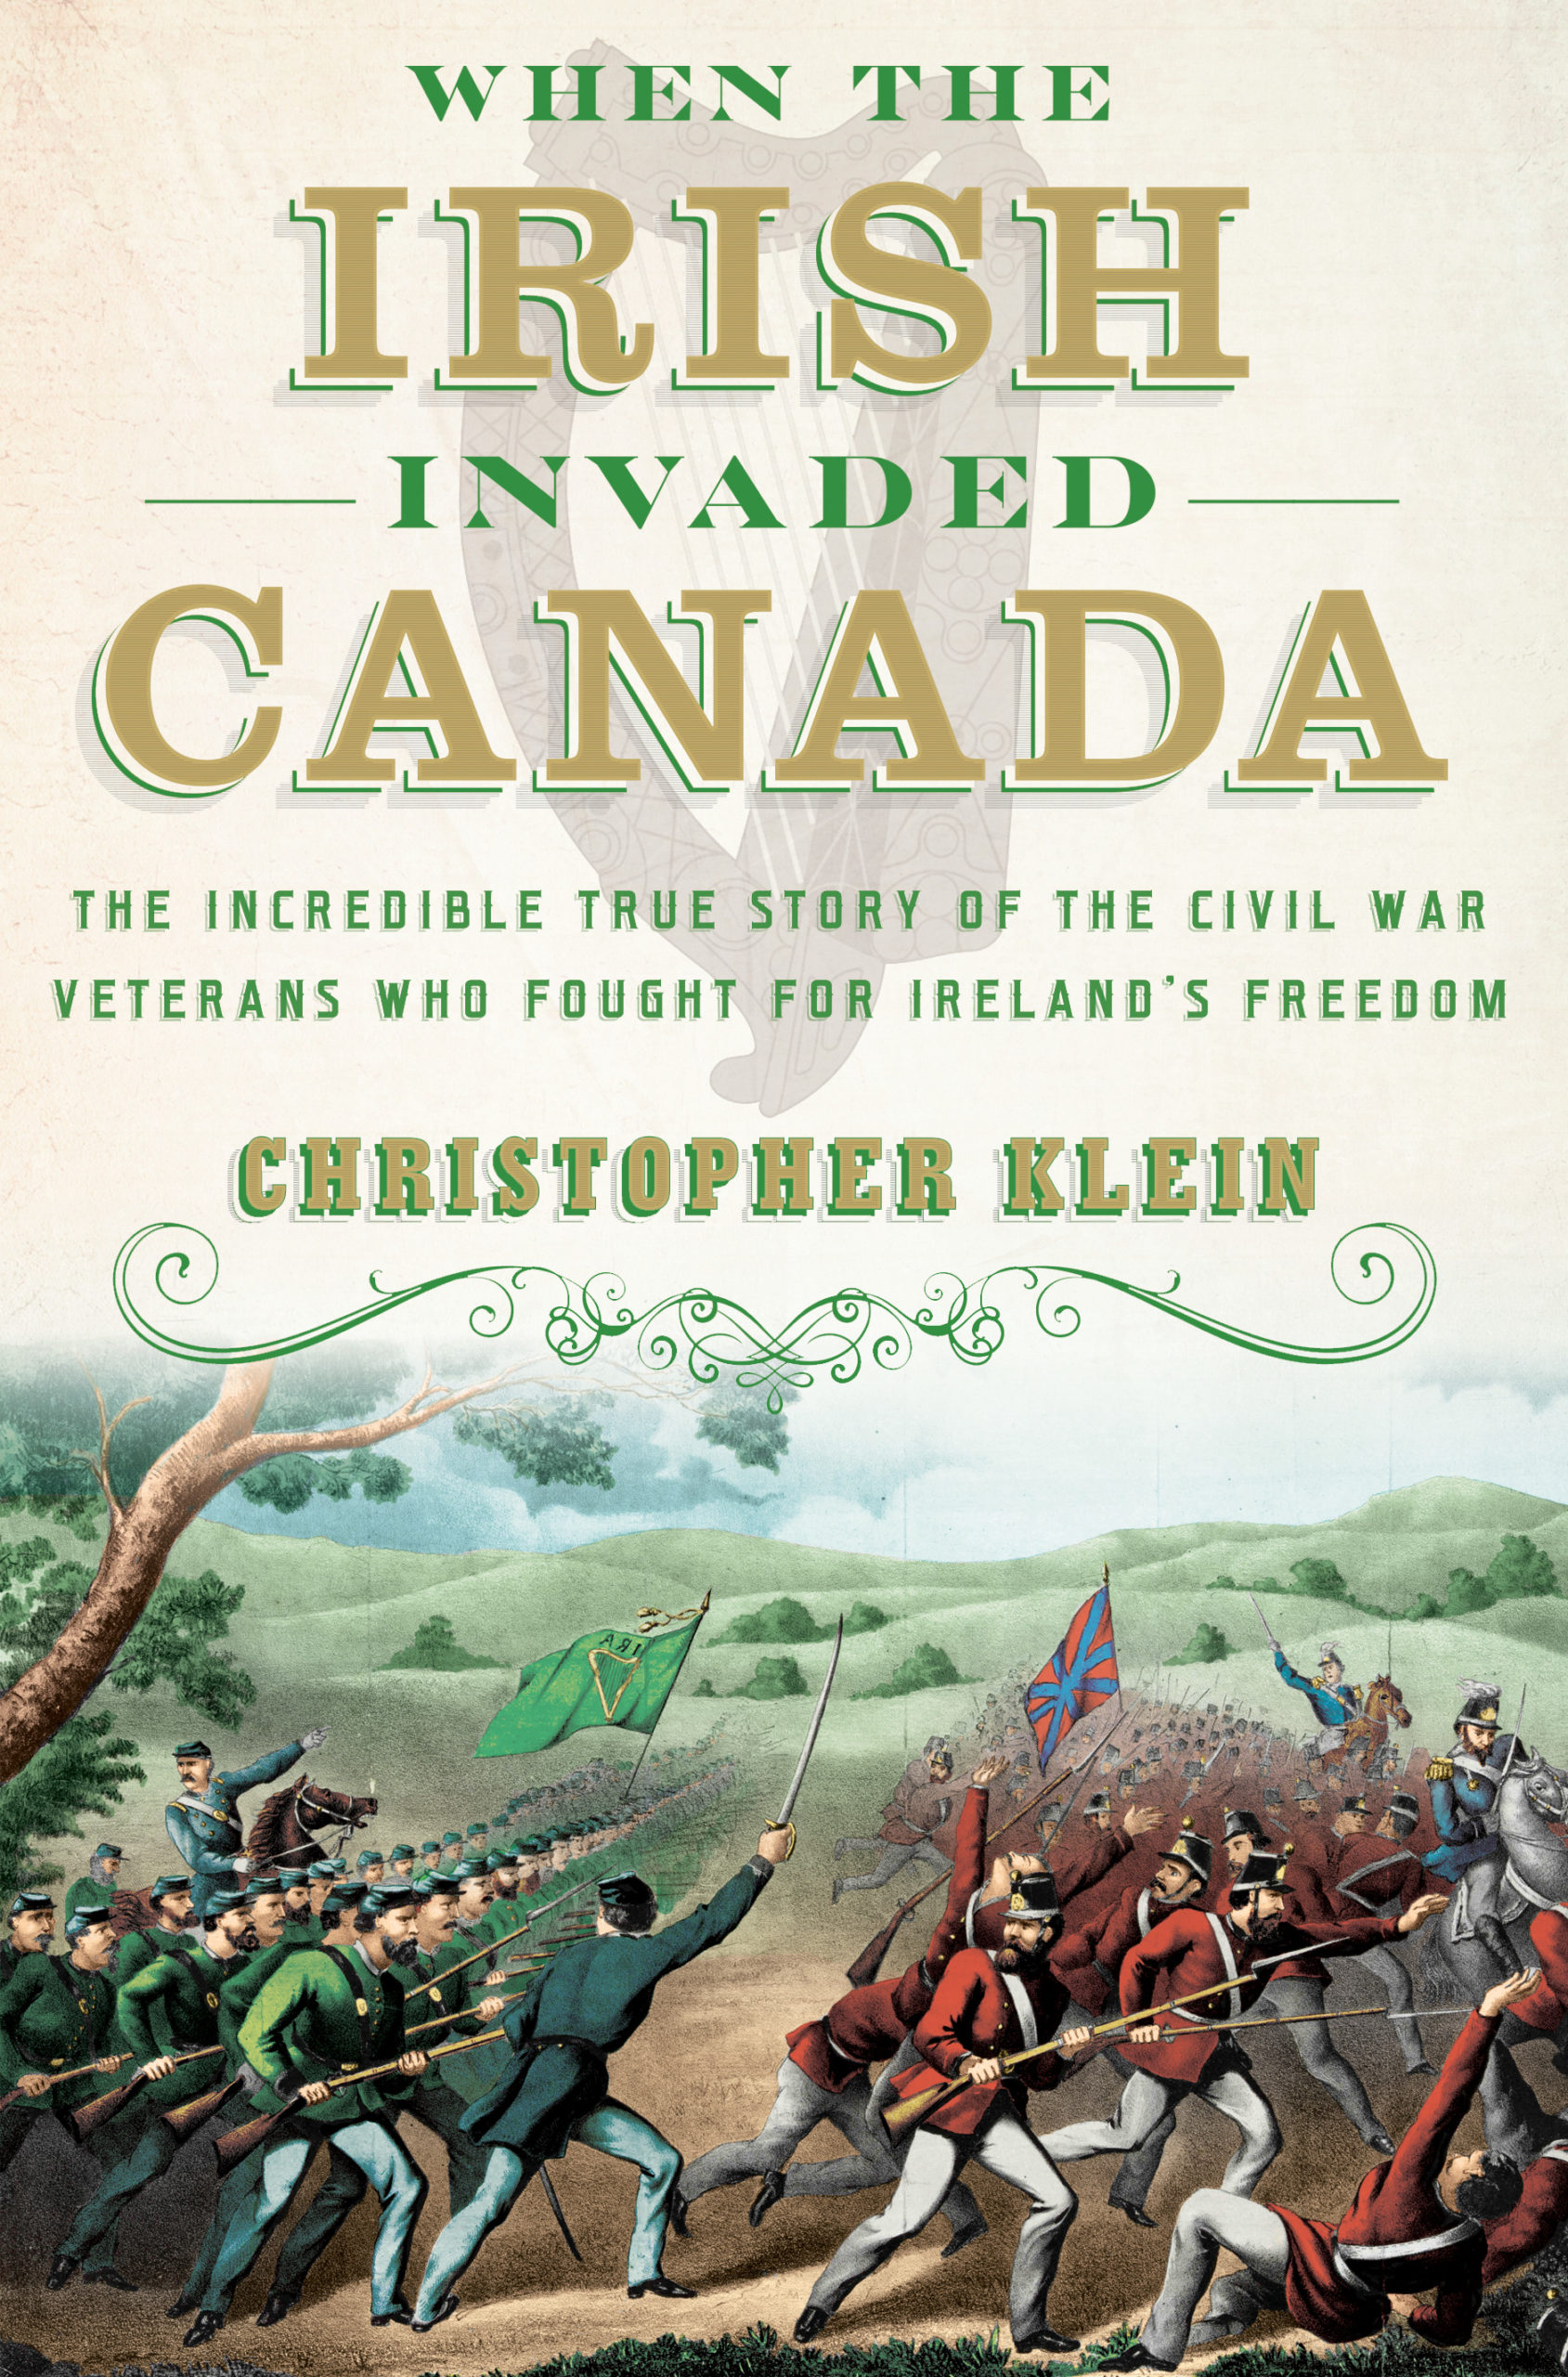 BookCoverWhenTheIrishInvadedCanada